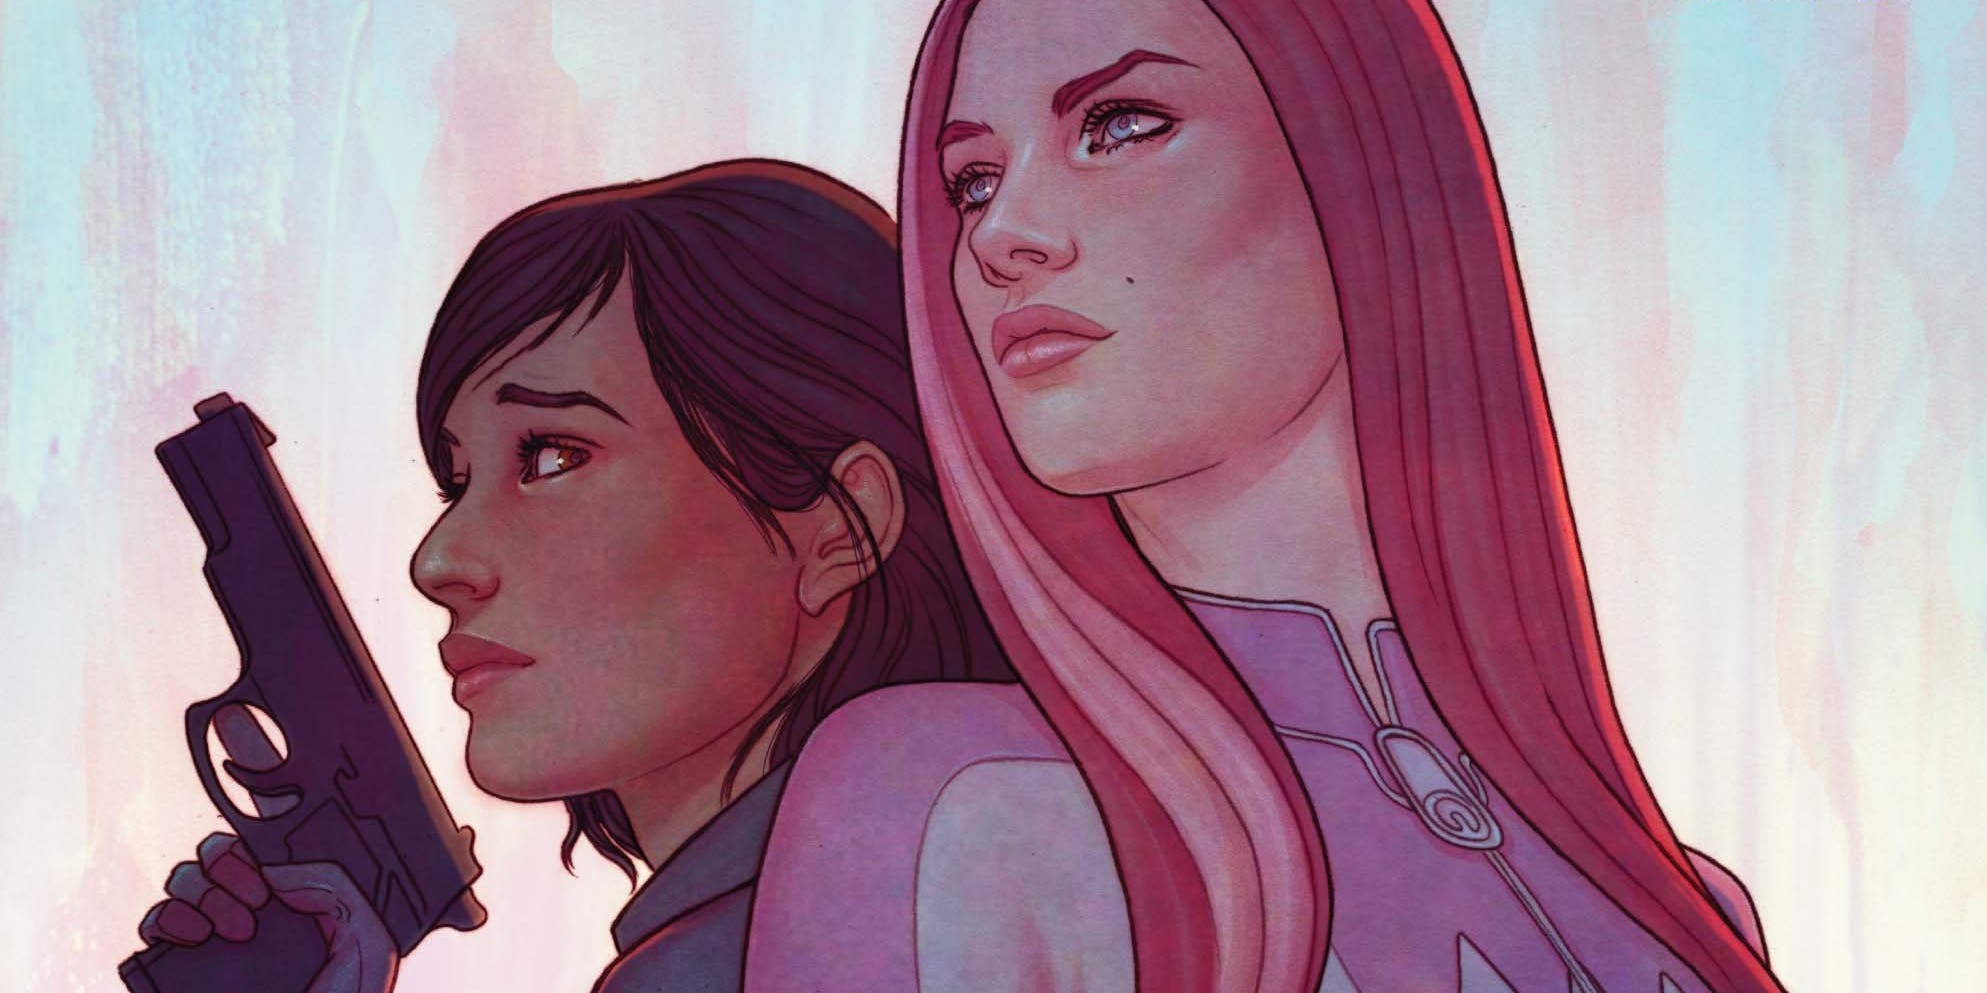 Gail Simone's 'Clean Room' Finishes Arc in Exclusive Preview